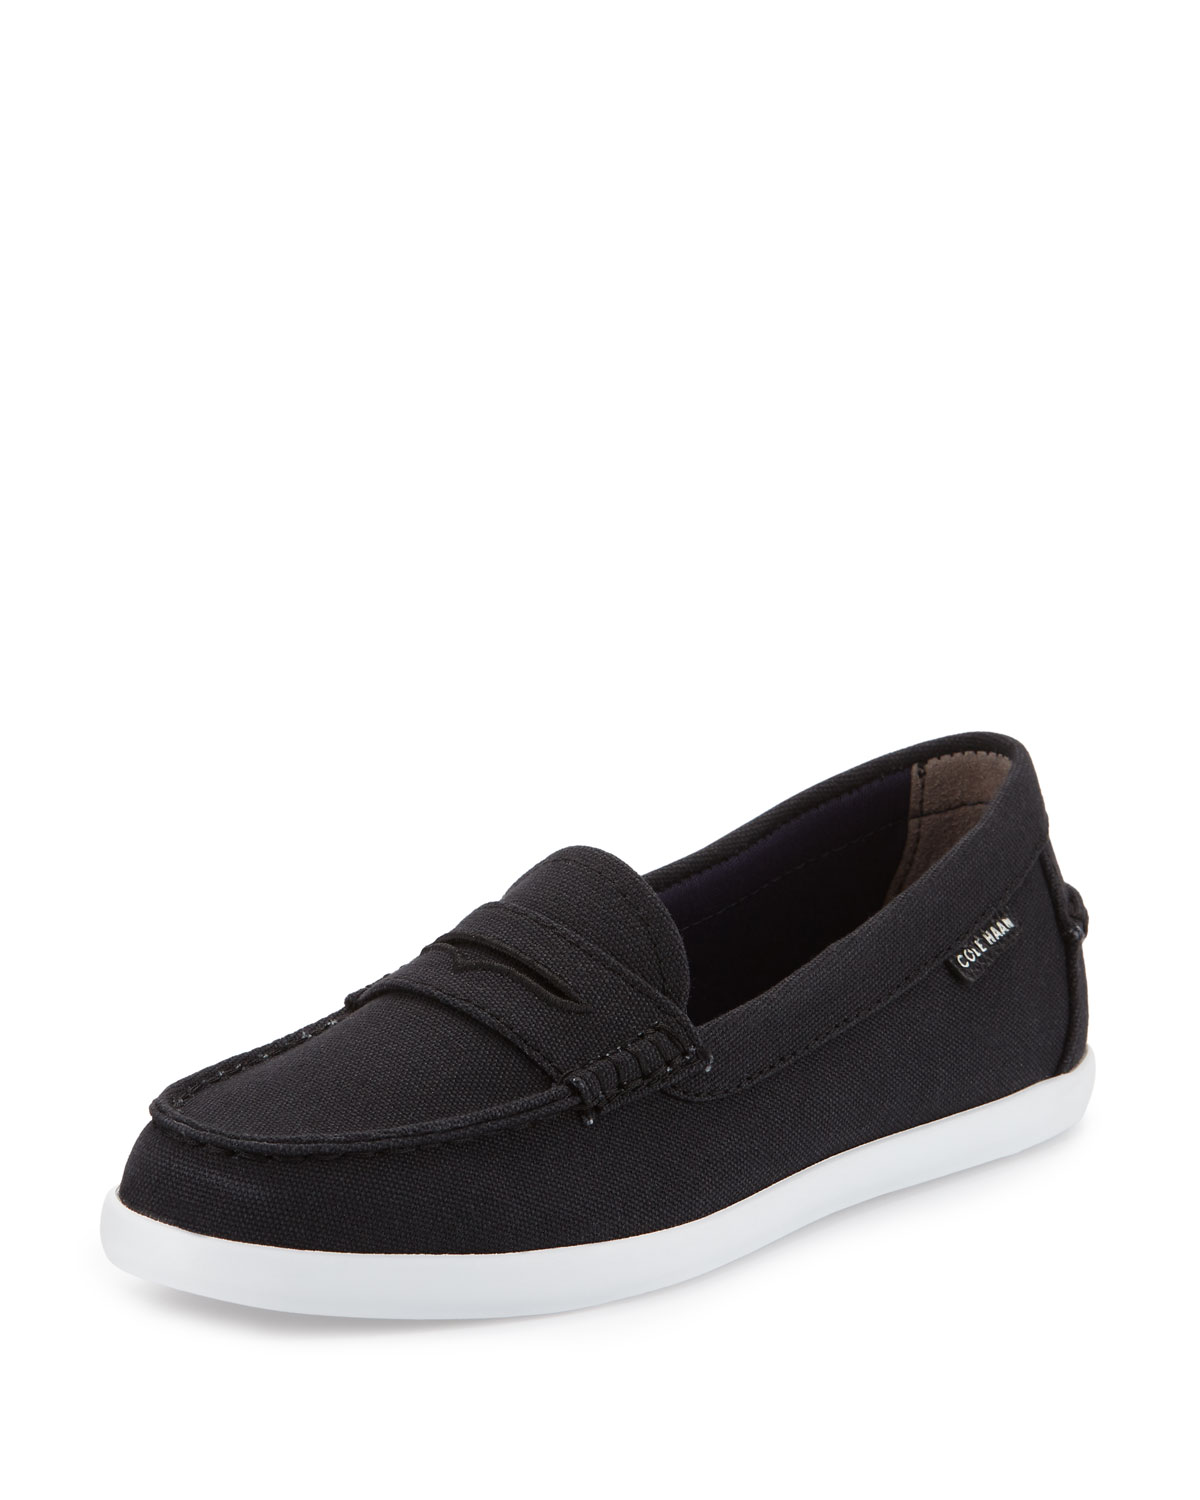 1e0ec5ad25f Cole Haan Nantucket Canvas Loafer